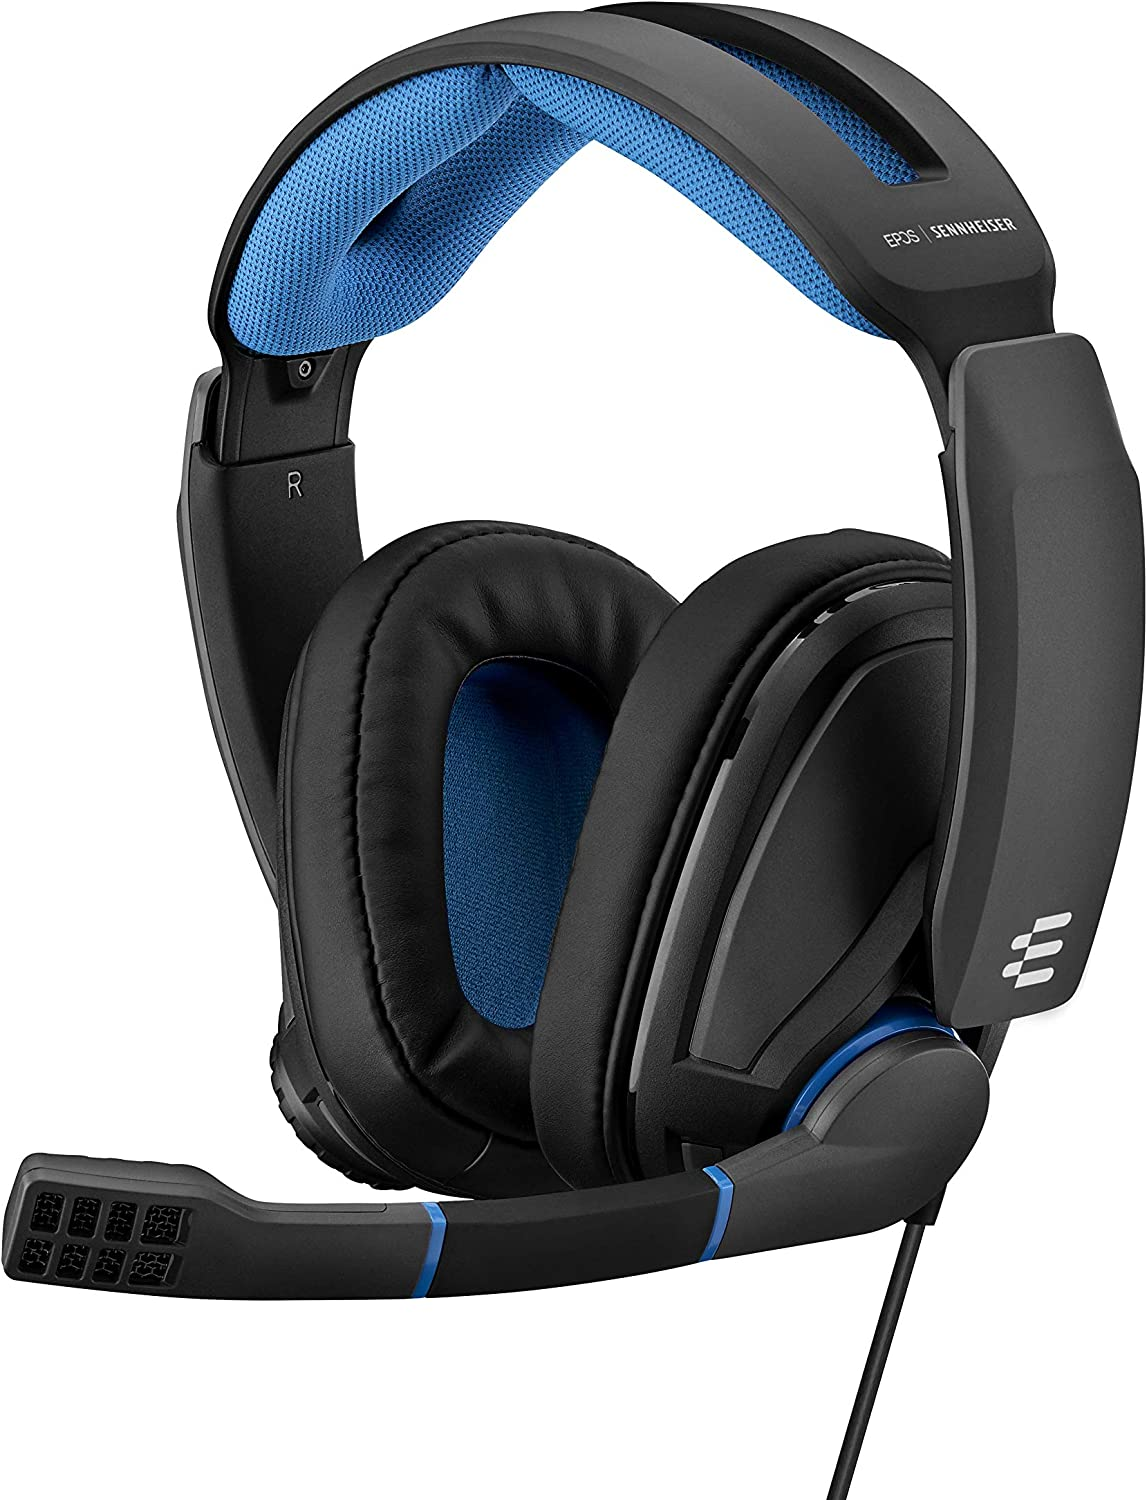 Amazon Com Epos Sennheiser Gsp 300 Gaming Headset With Noise Cancelling Mic Flip To Mute Comfortable Memory Foam Ear Pads Headphones For Pc Mac Xbox One Ps4 Nintendo Switch And Smartphone Compatible Computers Accessories